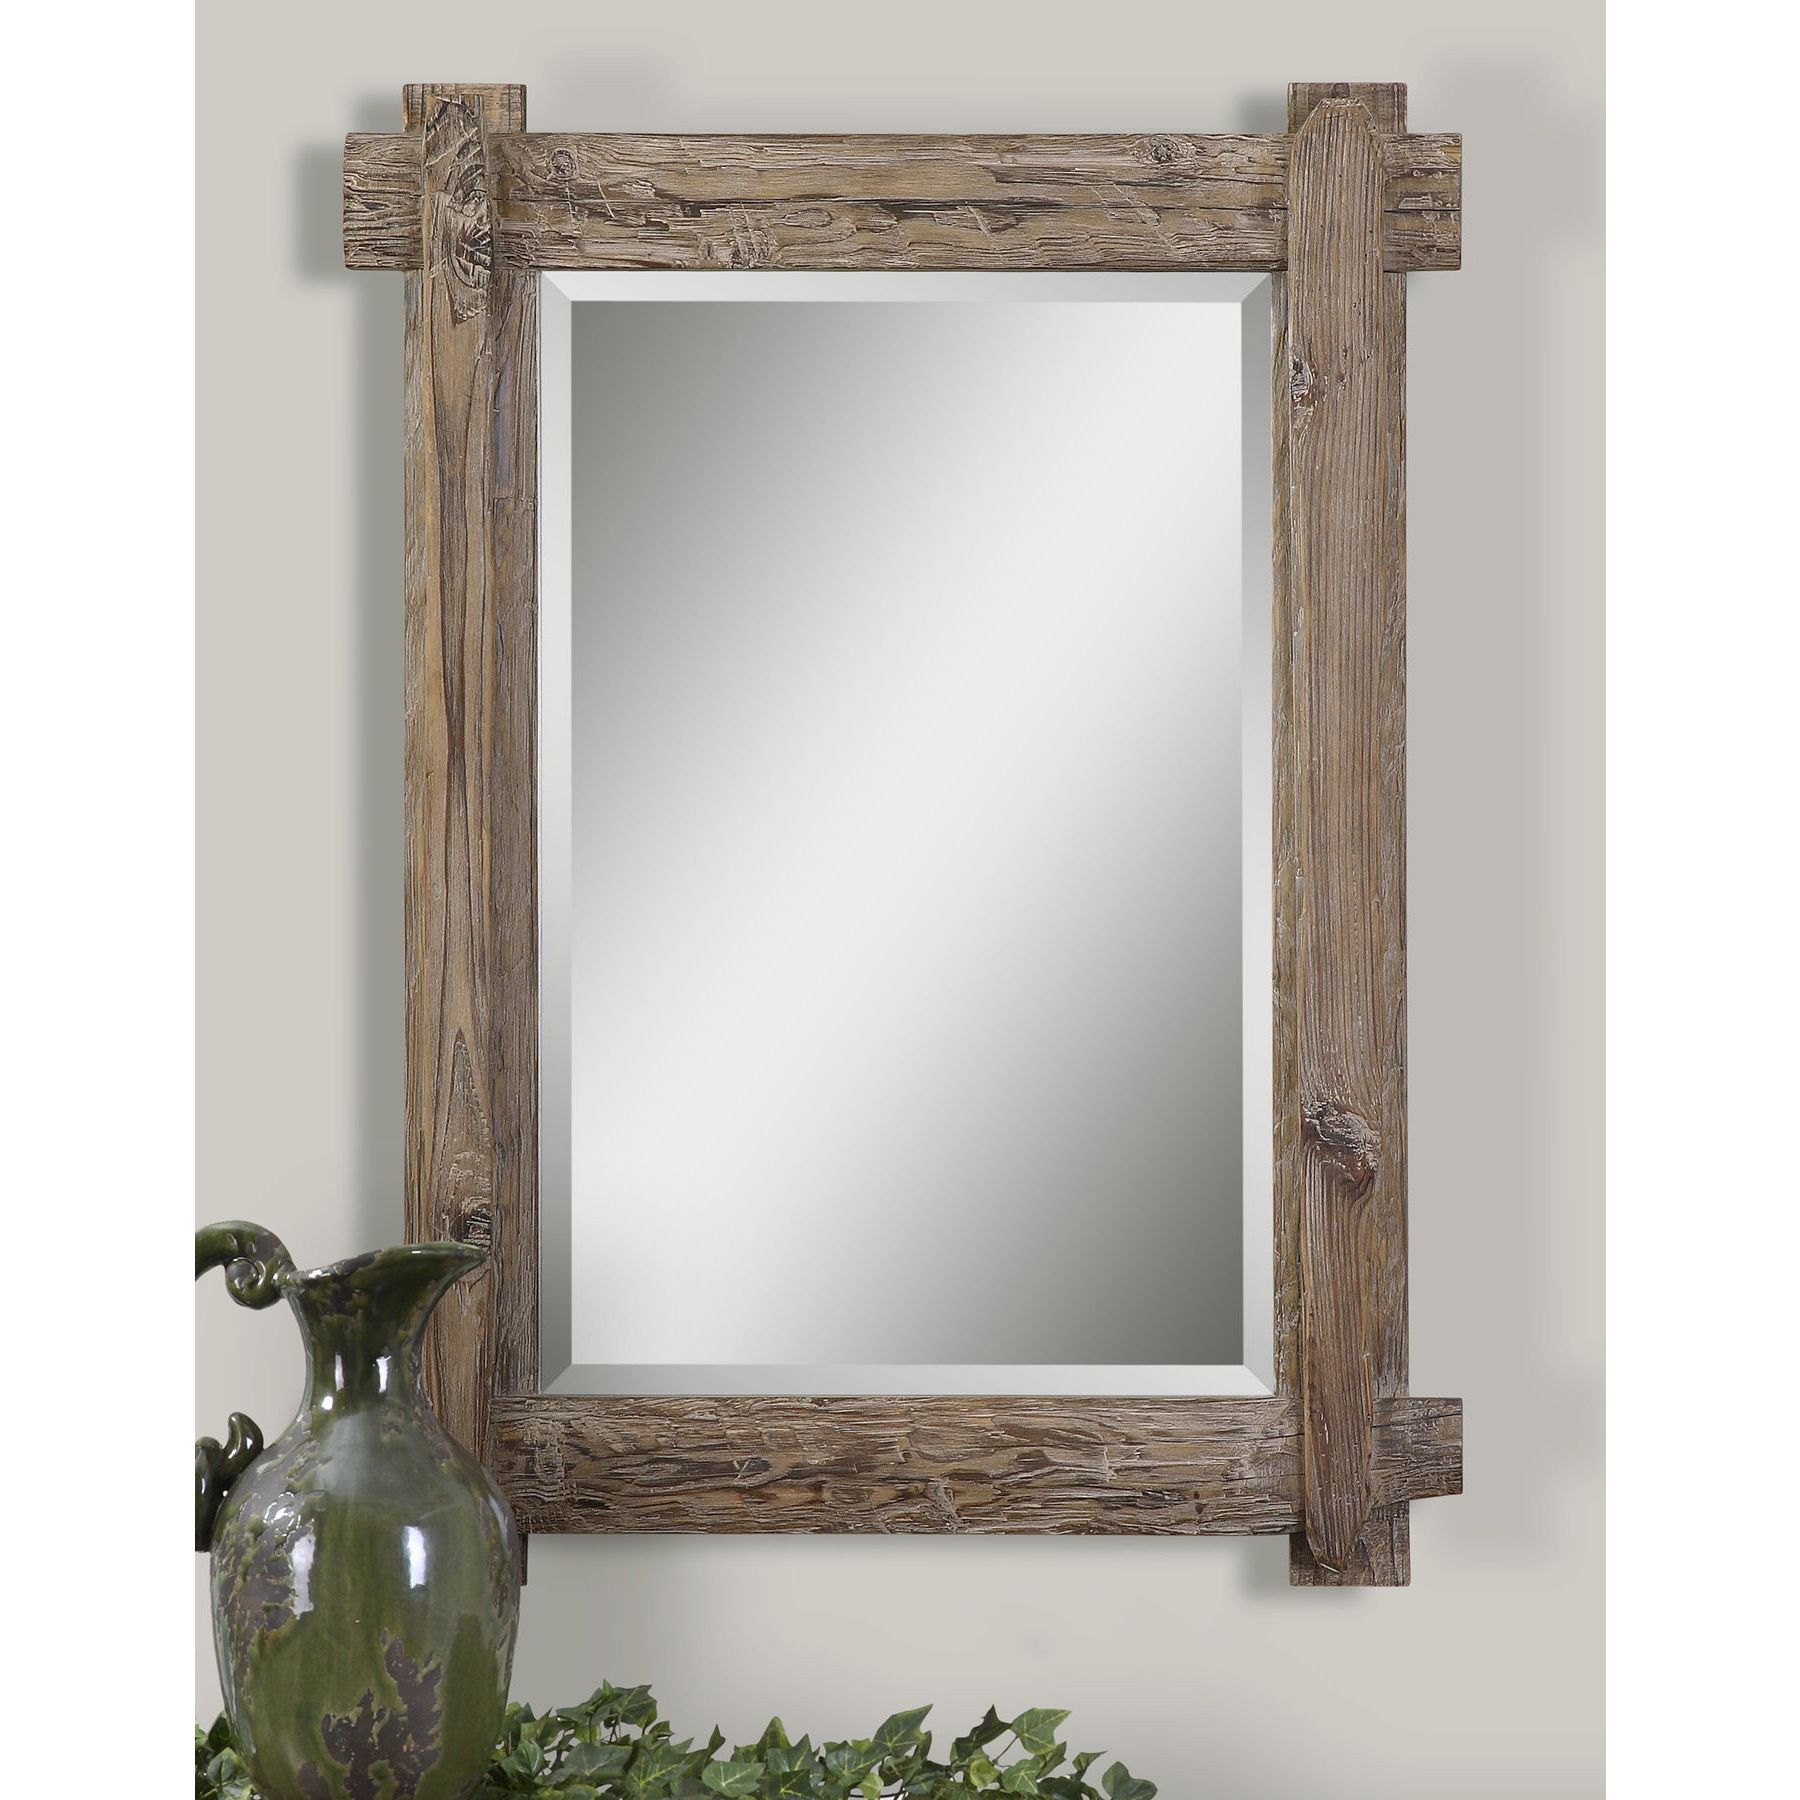 Uttermost Claudio Wood Mirror Natural 29 25x39 25x2 125 Wood Mirror Wood Framed Mirror Distressed Wood Mirror